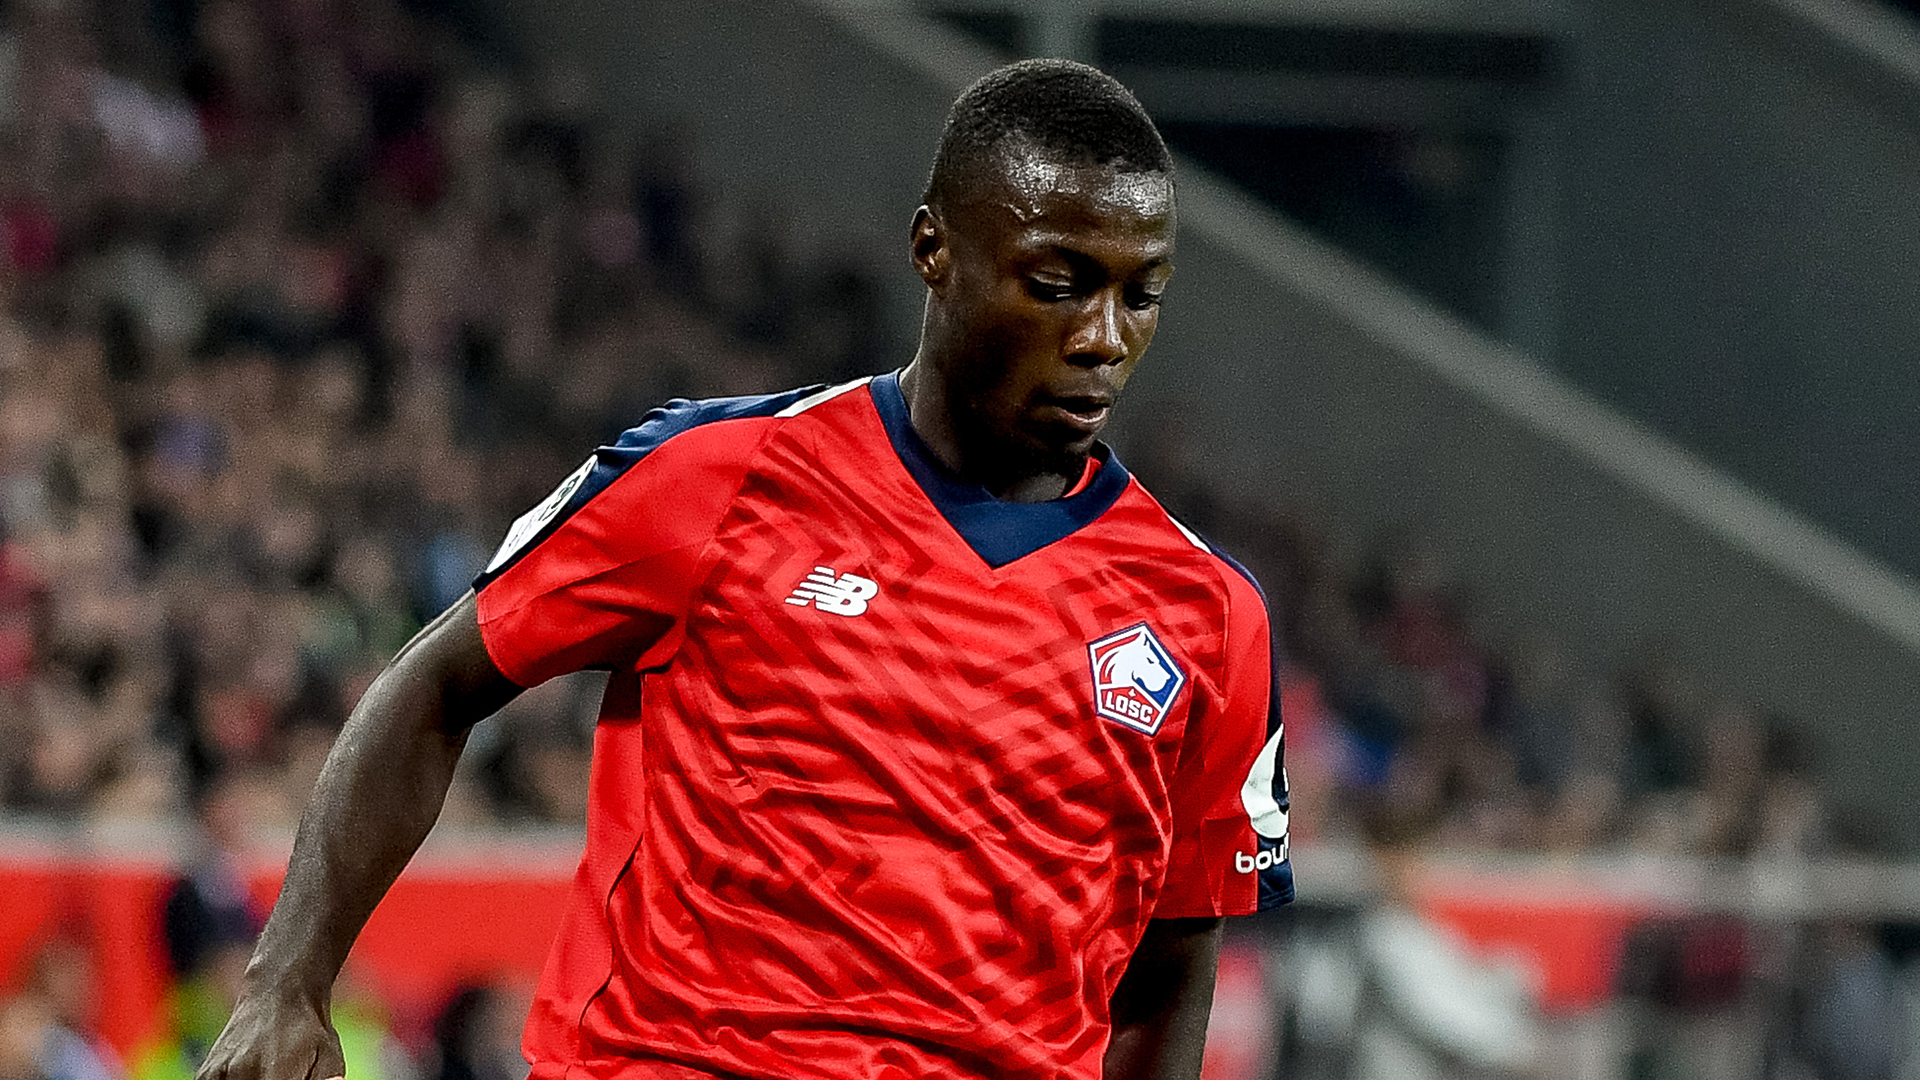 African All Stars Transfer News & Rumours: Arsenal turn to